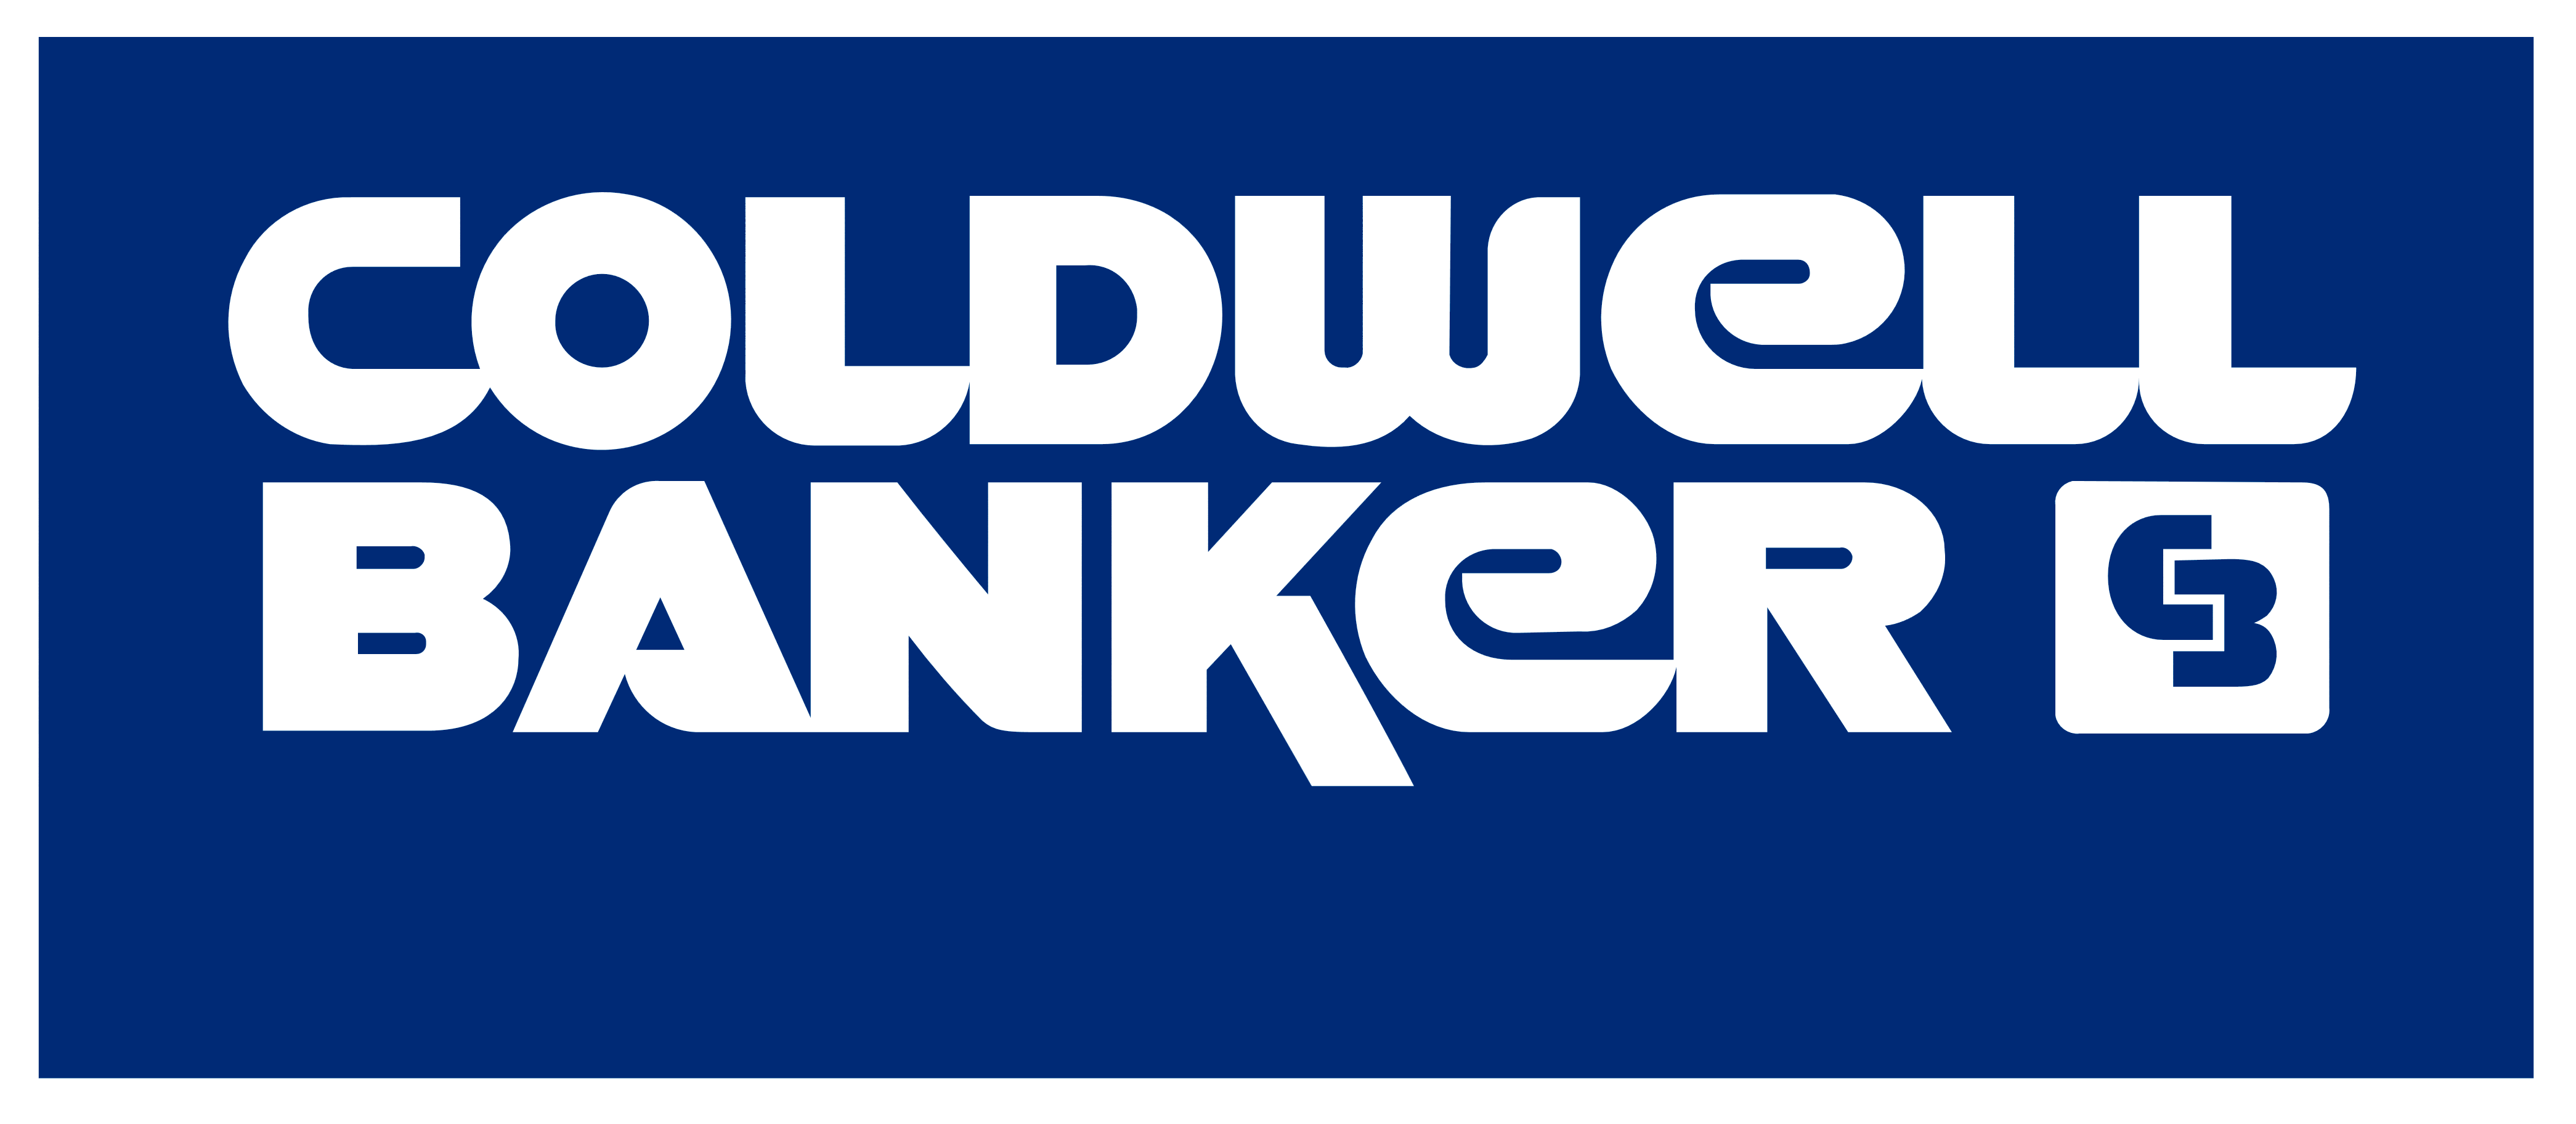 coldwell banker logos download Coldwell Banker Logo Embroidery Design coldwell banker residential brokerage logo vector